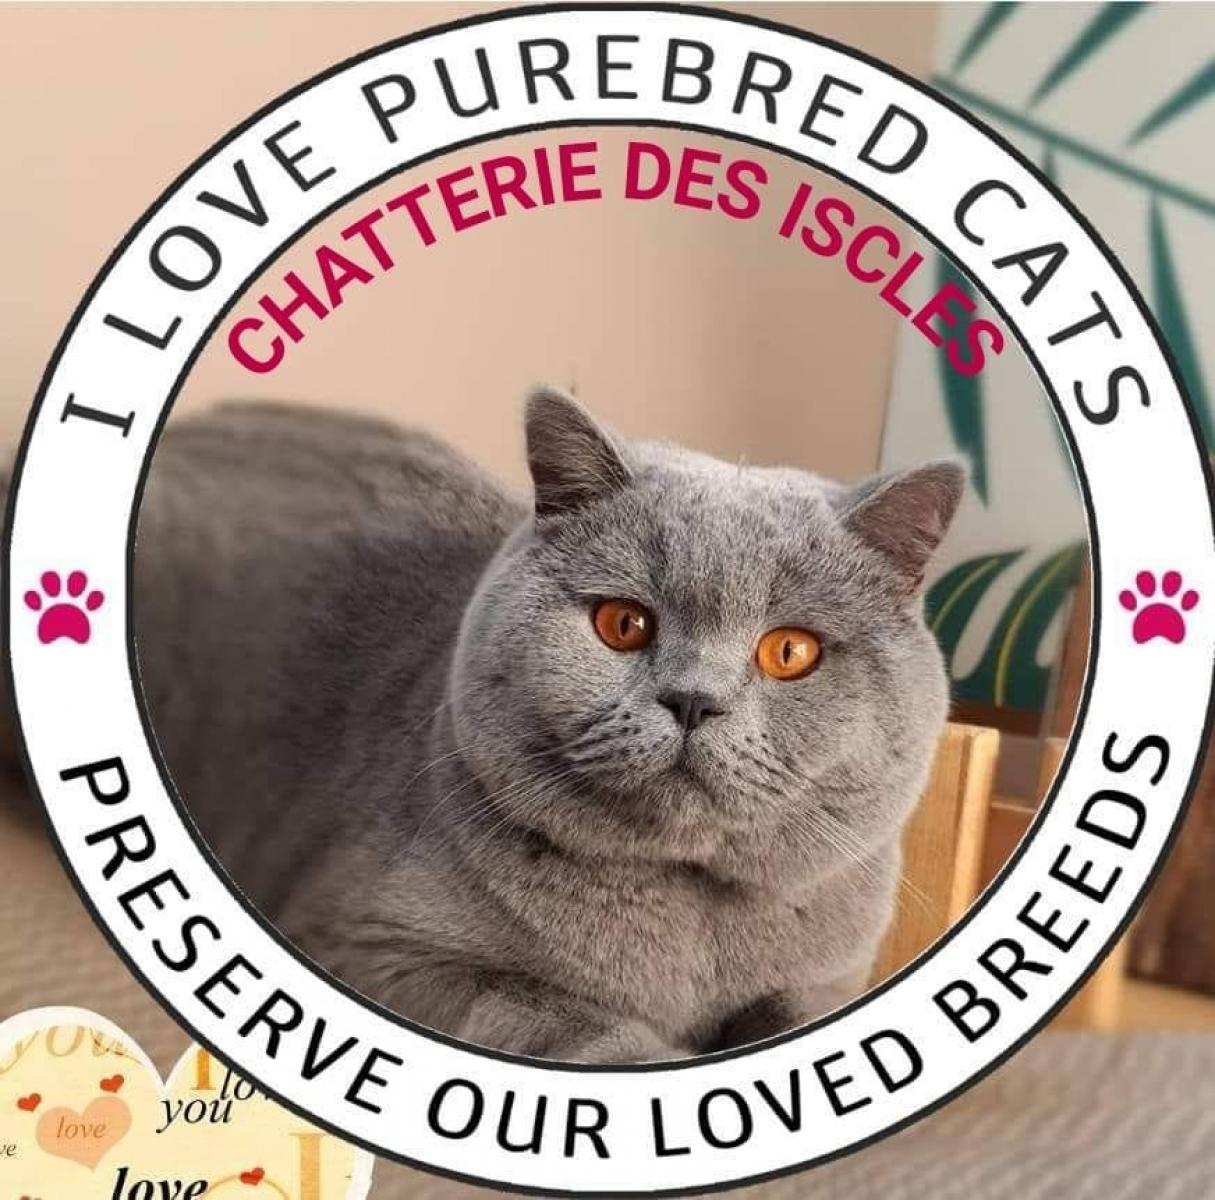 Chatterie Des Iscles